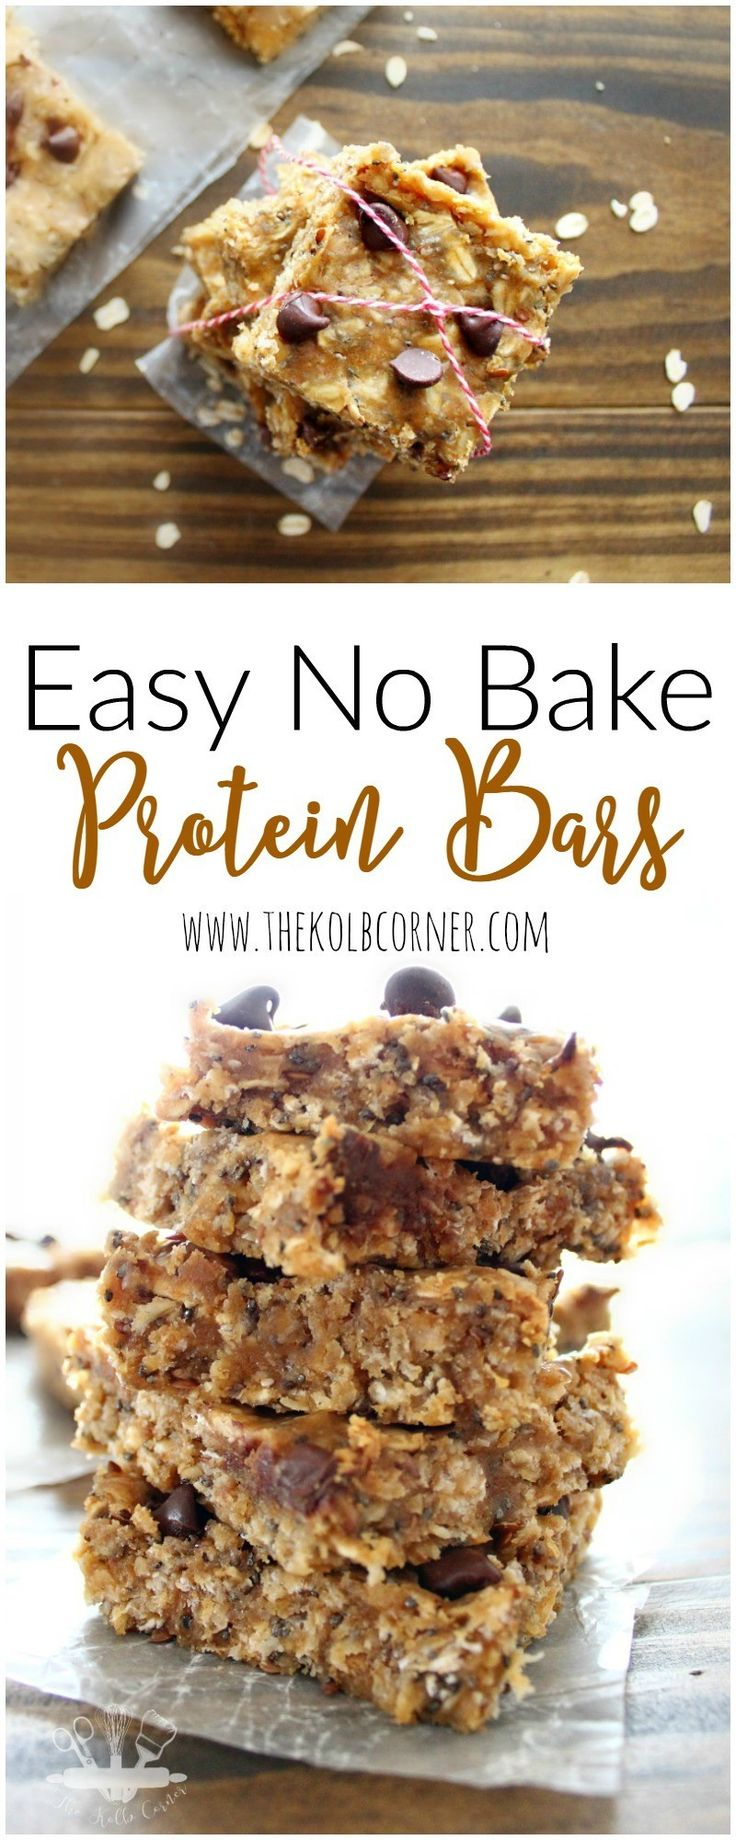 Here's a recipe for no bake protein bars that are packed with enough protein to give your body the boost it needs, while satisfying the sweetness you crave.